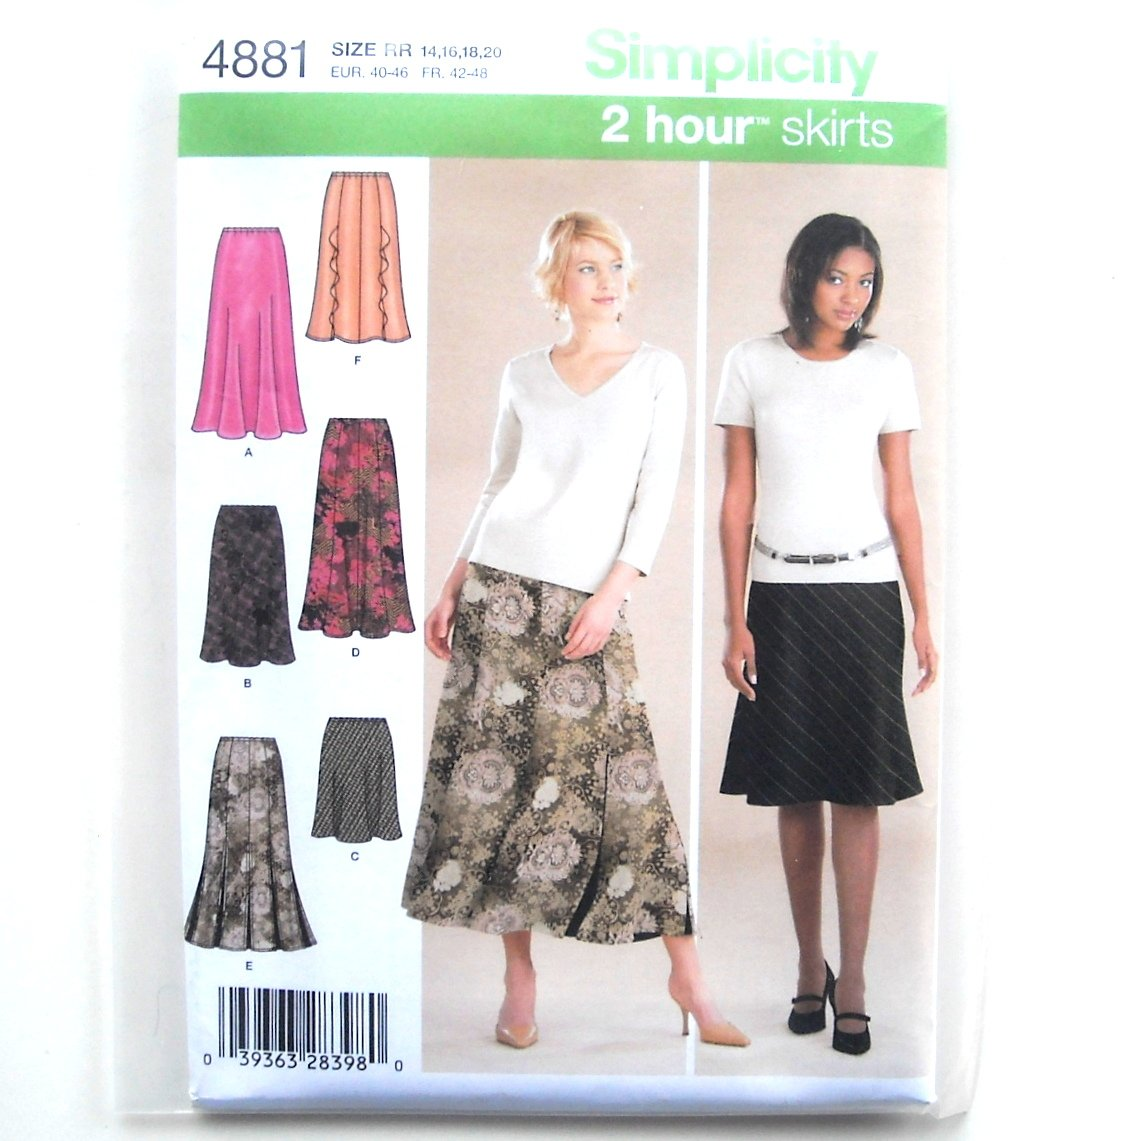 Womens Misses Gored Bias Skirts 14 - 20 2 Hour Simplicity Pattern 4881